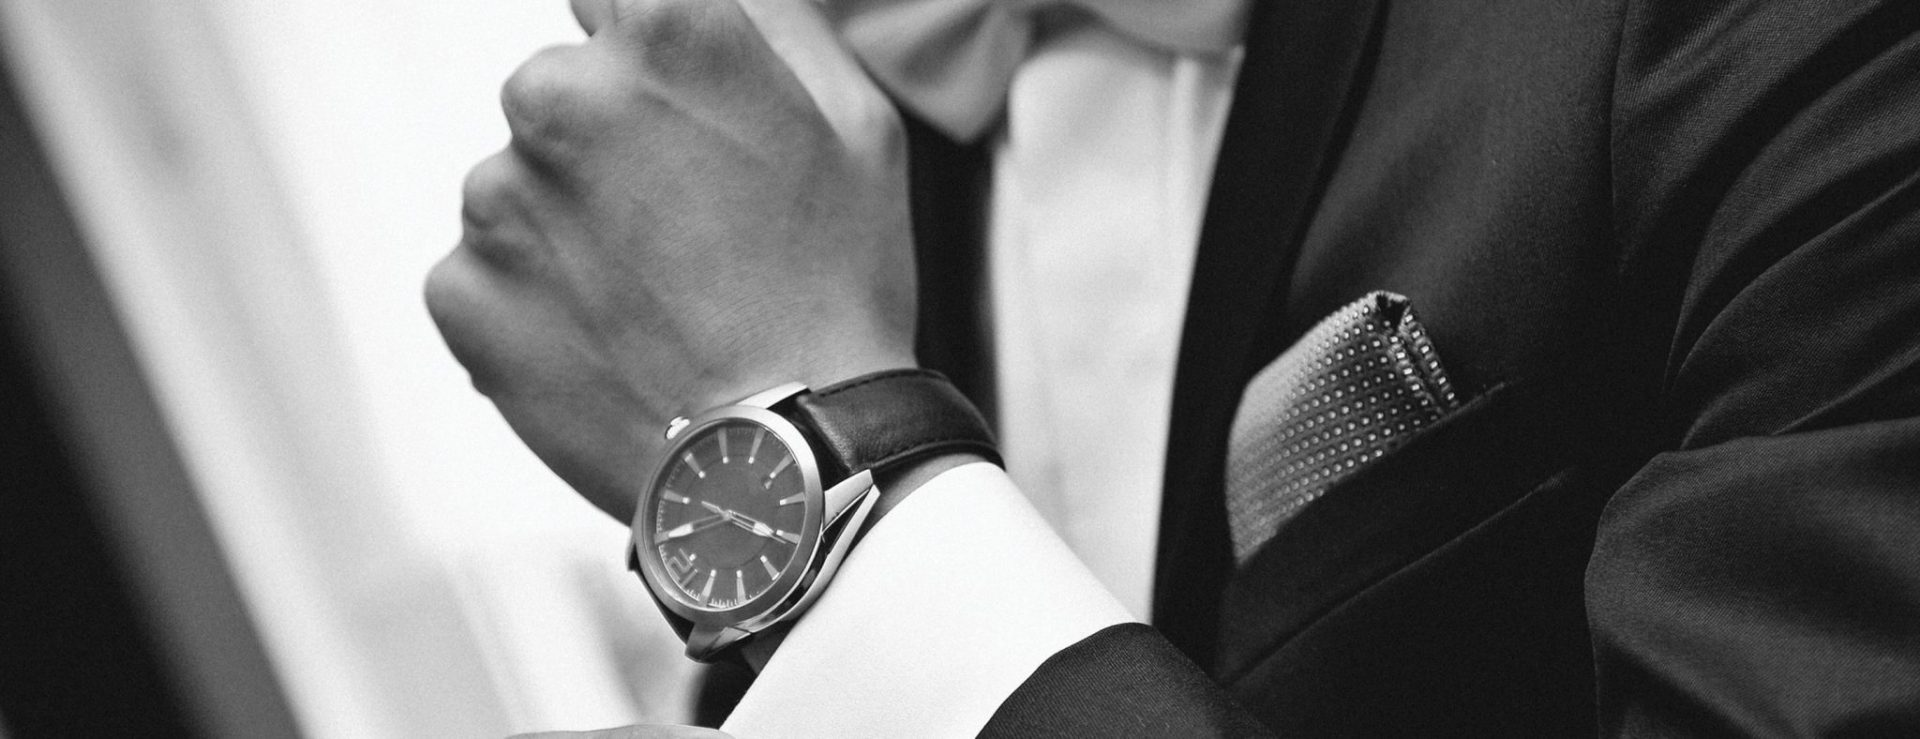 Man-with-suit-and-watch-on-hand